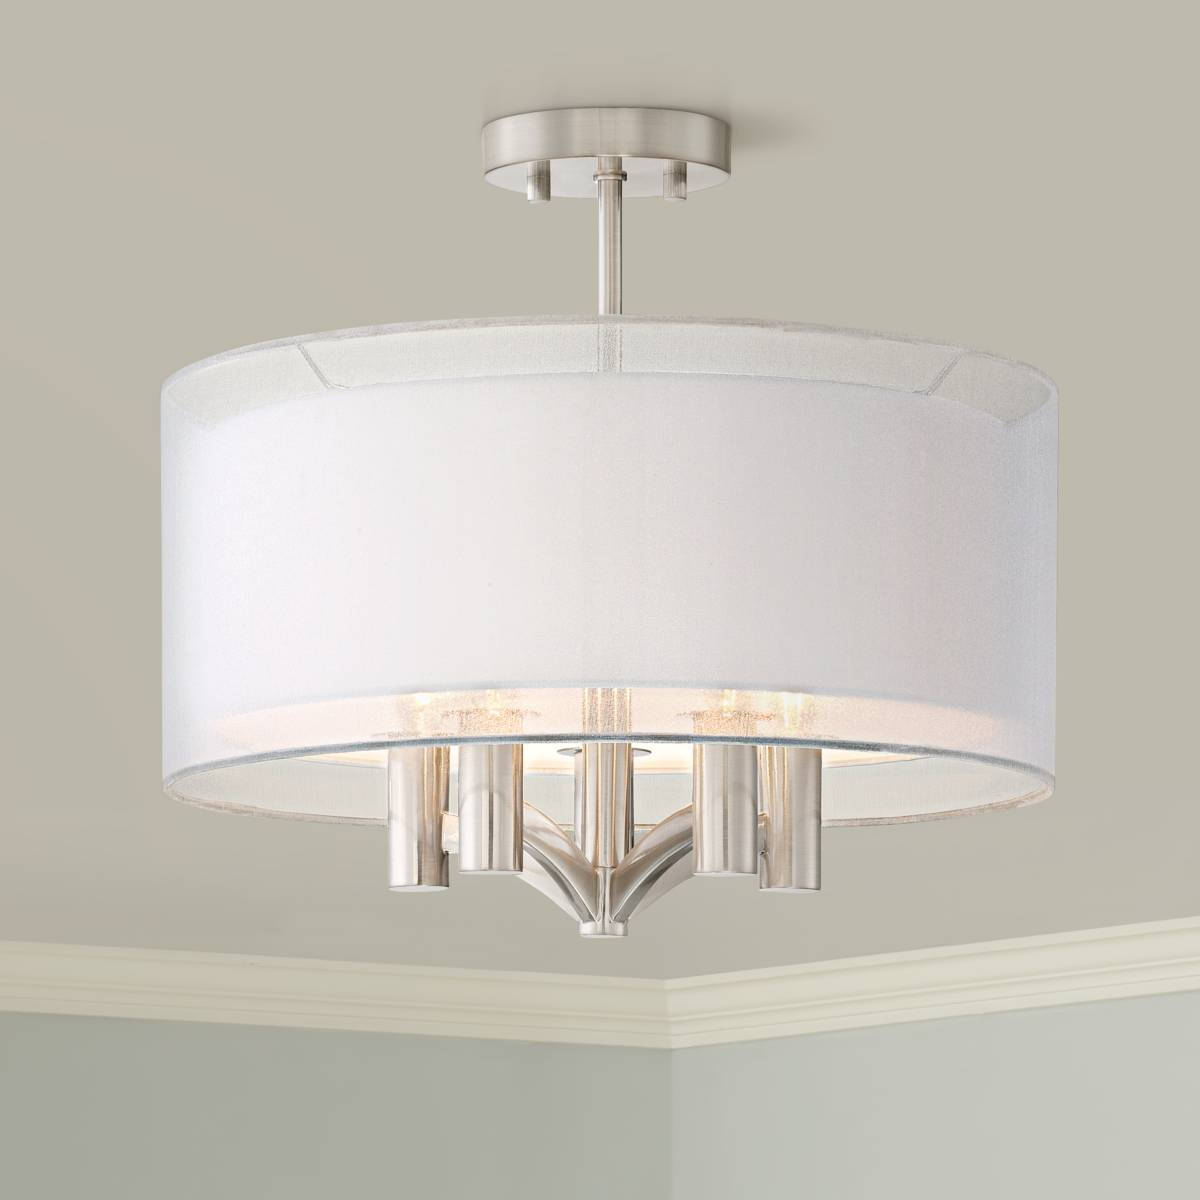 Semi Flush Mount Lights Stylish Ceiling Light Designs